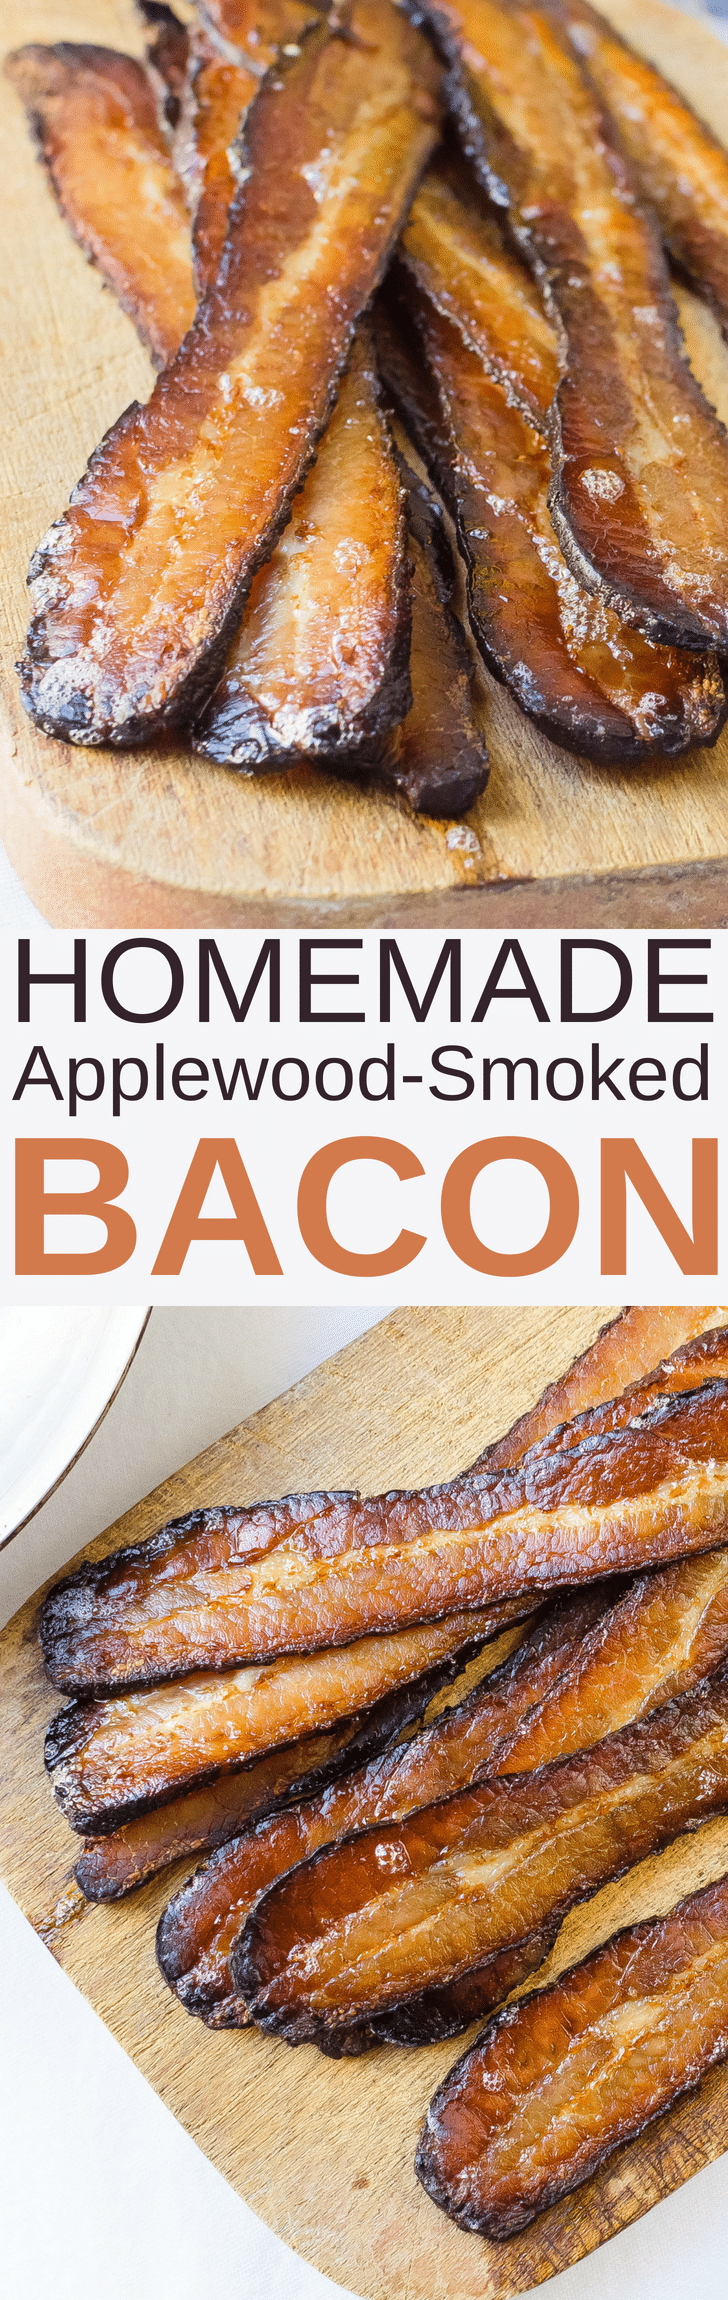 Looking for a good smoked bacon recipe? My Homemade Applewood Smoked Bacon is it! Learn